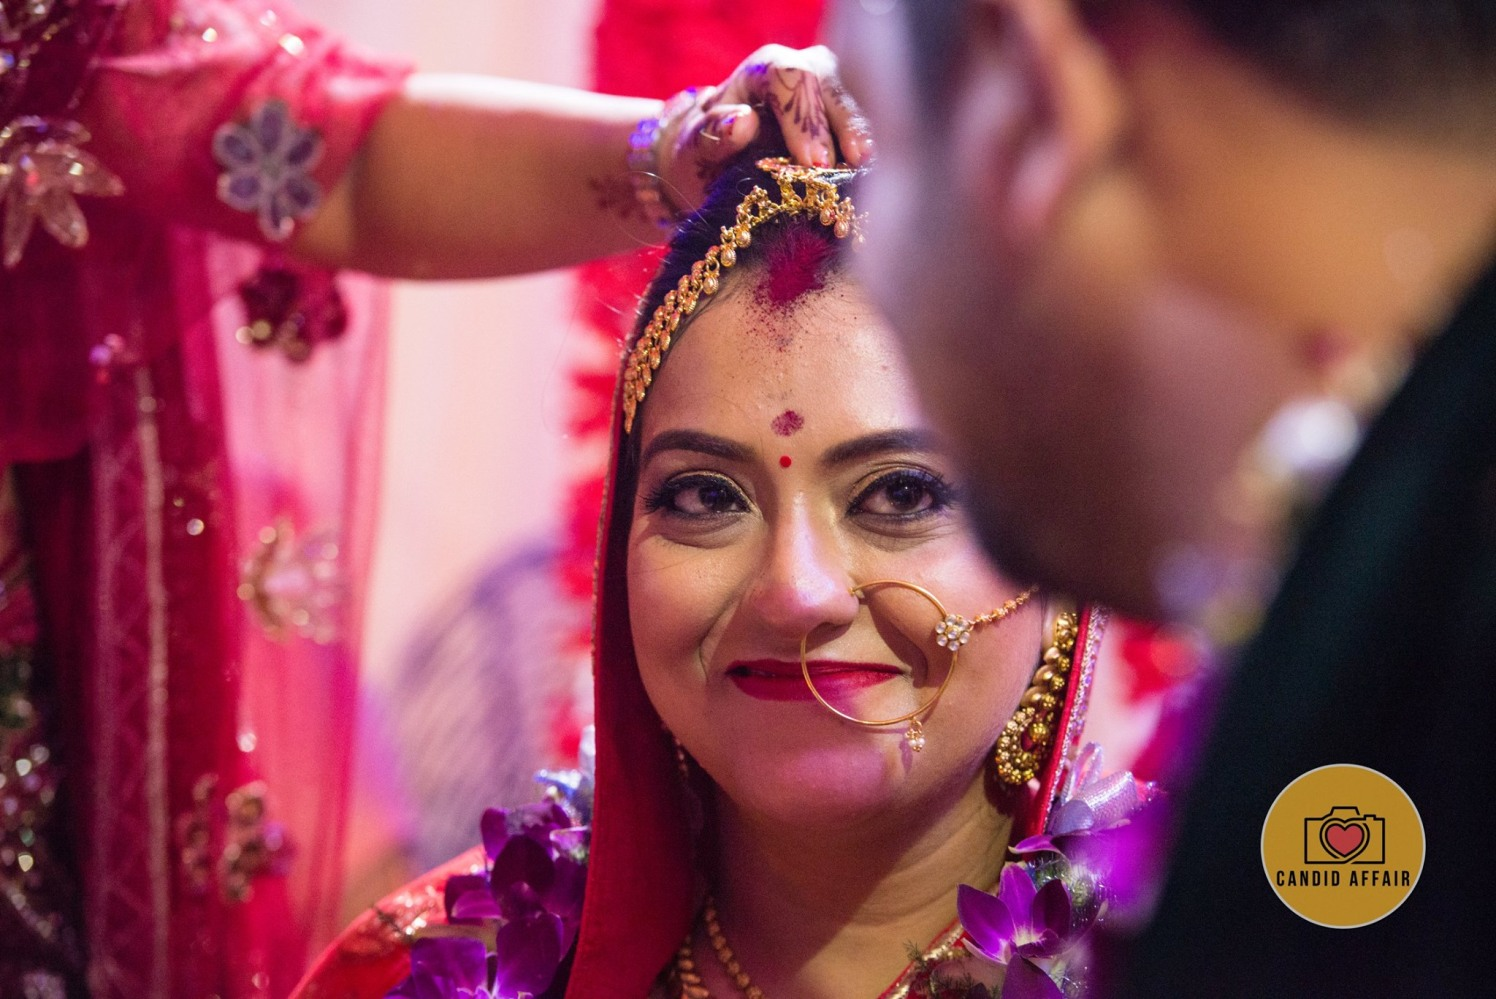 Makeup Options For Bride On Wedding Day by Candid Affair Wedding-photography Bridal-jewellery-and-accessories Bridal-makeup | Weddings Photos & Ideas